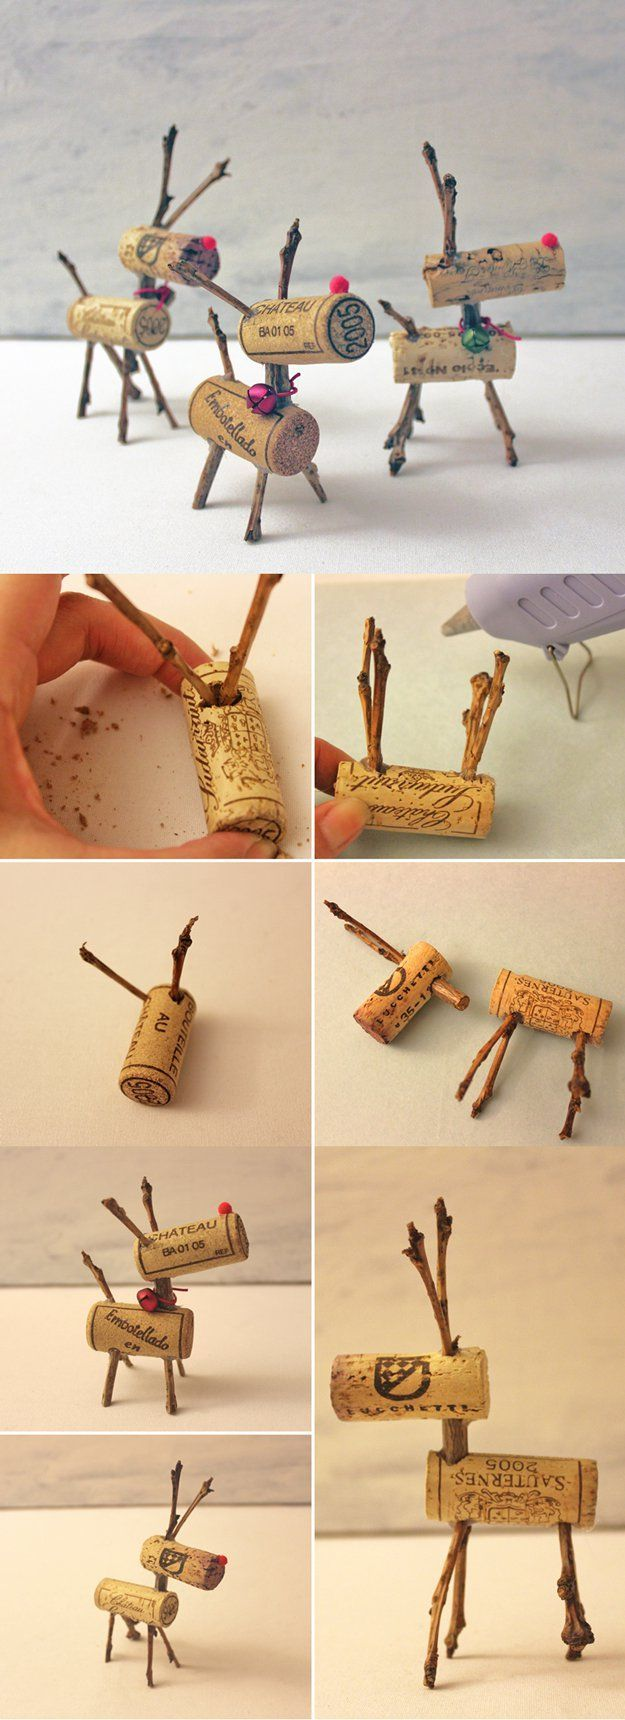 Adult Christmas Craft Ideas Part - 23: 43 More DIY Wine Cork Crafts Ideas DIYReady.com | Easy DIY Crafts, Fun